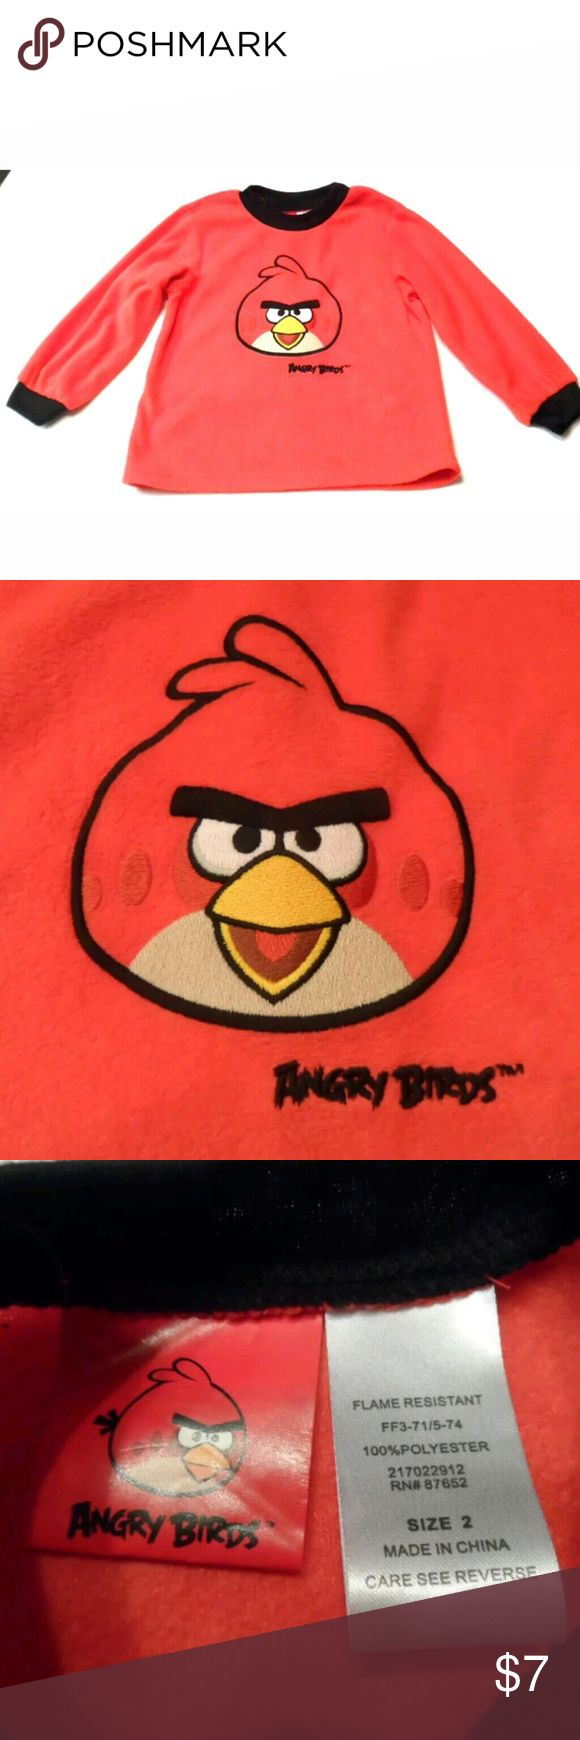 """Unisex Toddler Shirt Angry Birds size 2 Unisex toddler 100% polyester long sleeve shirt, size 2. Measures approx. 14"""" long from shoulder to hem.. Measures approx. 13"""" wide @ chest from armpit to armpit. Sleeves measure approx. 9"""" long from directly under armpit. Item has been pre-owned;  I do not find any stains, rips or odors. ** Coming to you from a smoke-free home.  ?? I have 100% positive feedback on my other selling channel...please see link inside profile. Angry Birds Shirts & Tops…"""